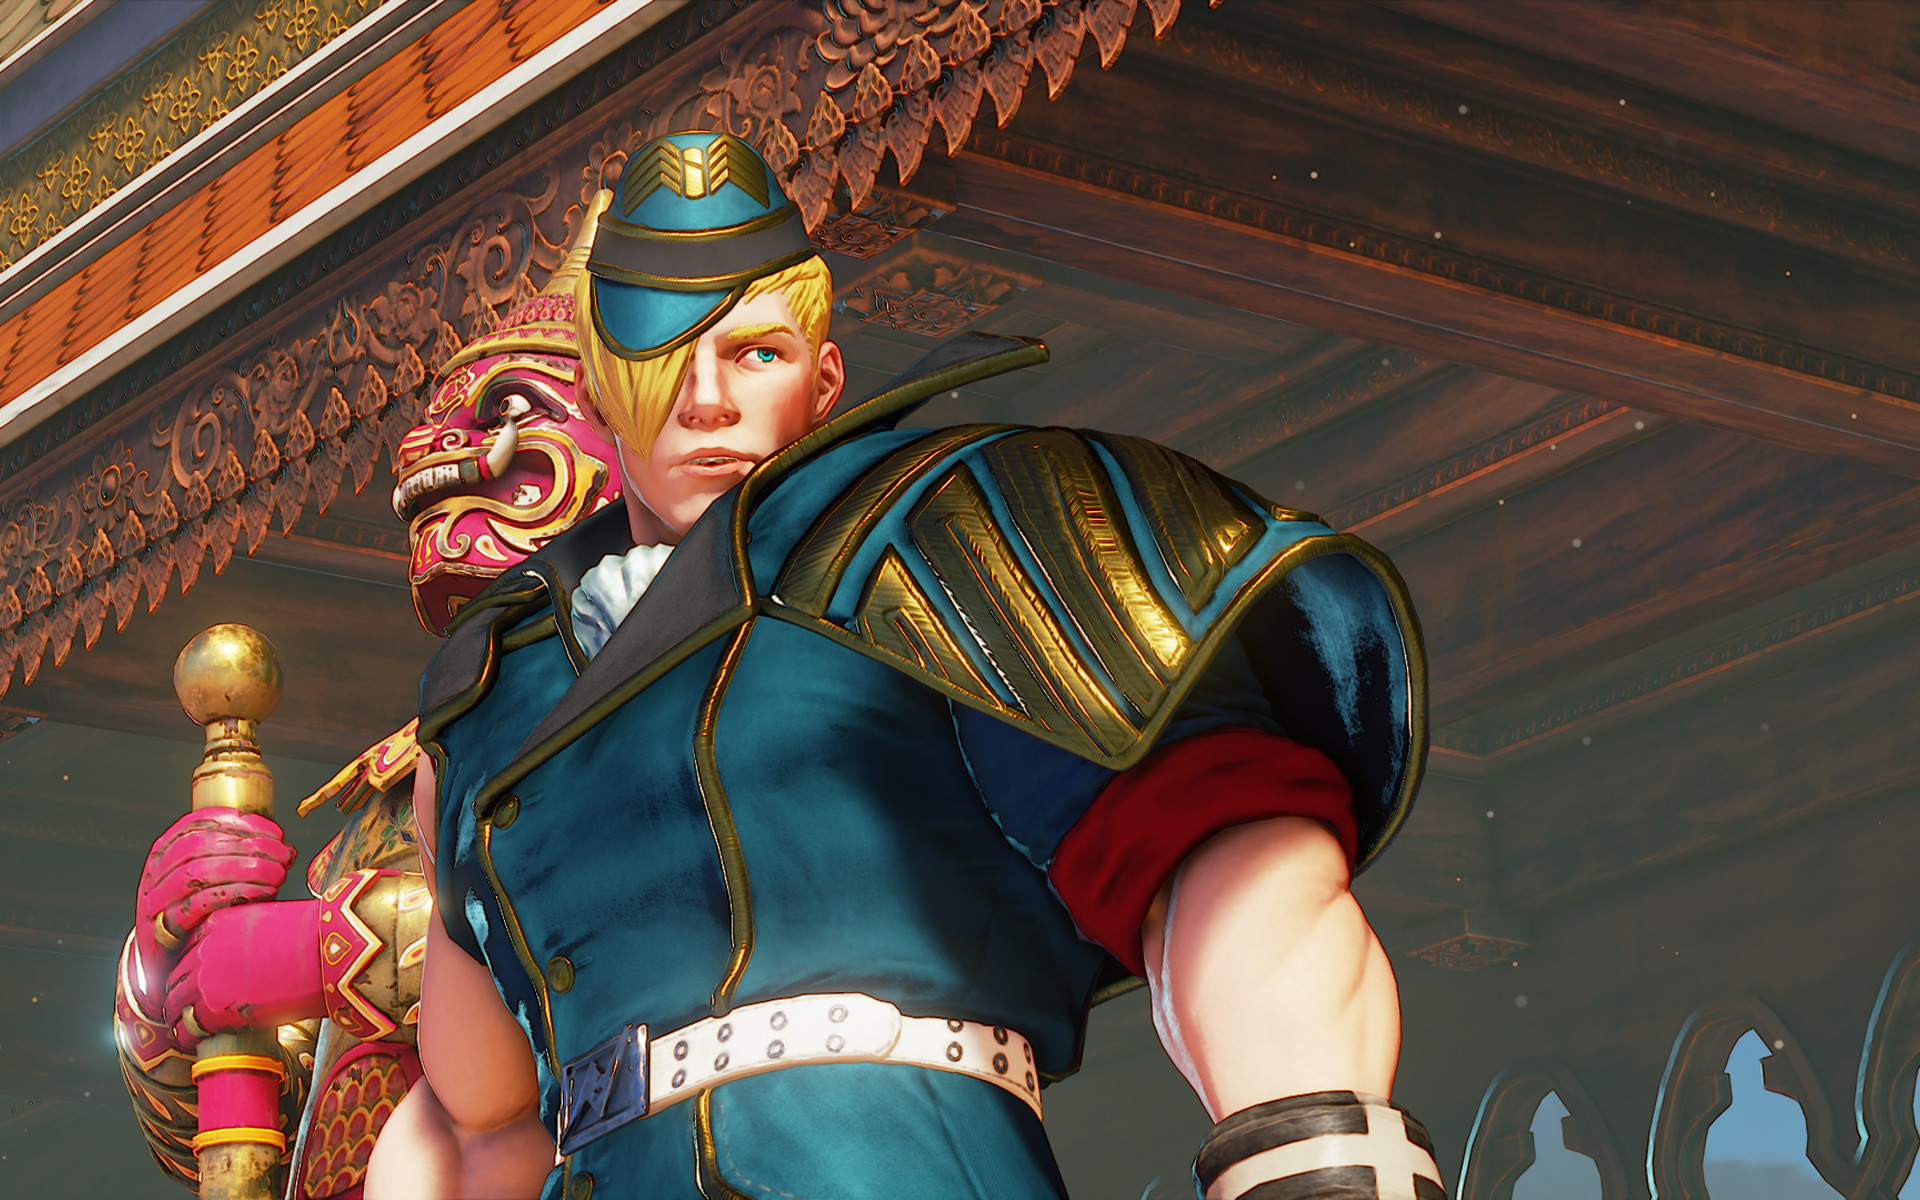 Free Street Fighter V Wallpaper in 1920x1200